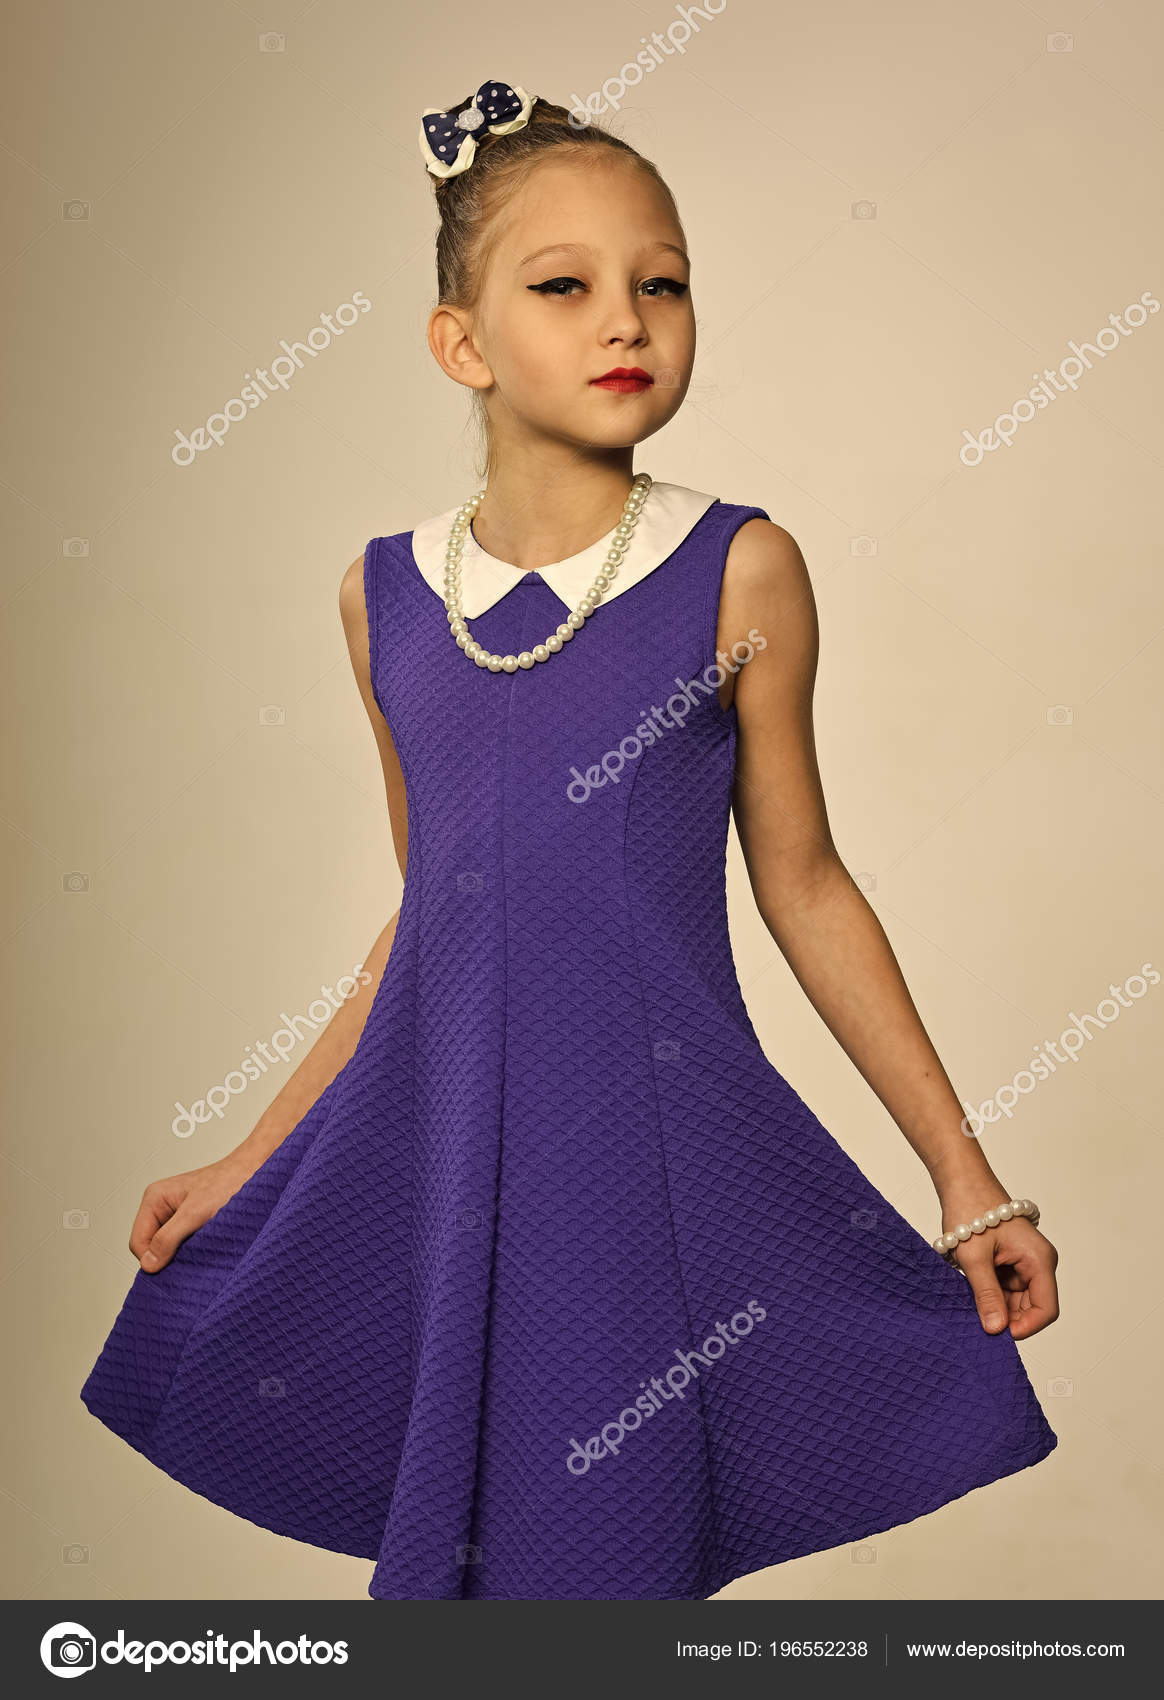 db3a9e52c67f Happy kid having fun. Fashion and beauty in childhood. Retro girl ...